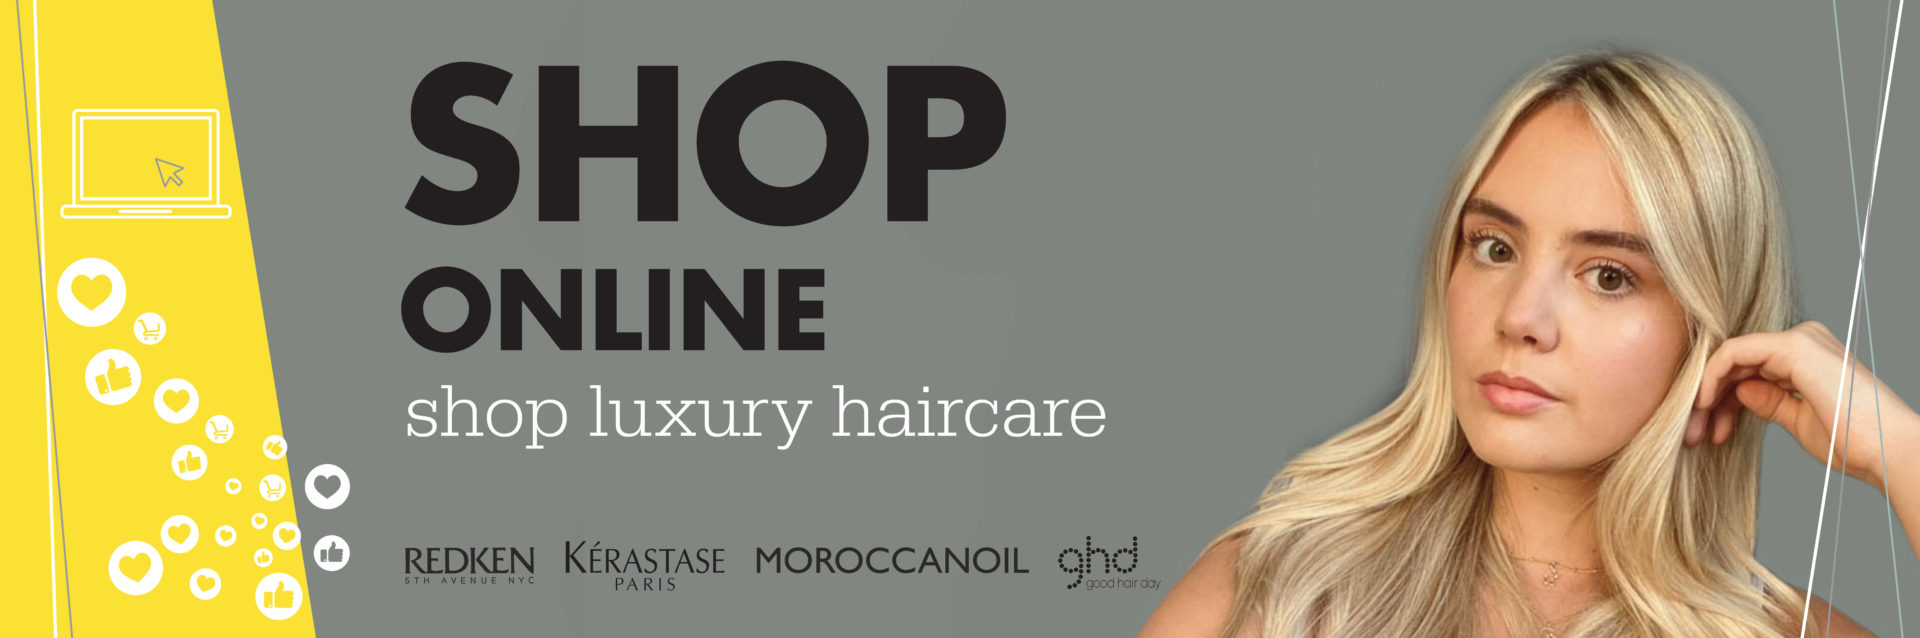 We're Open Online - Shop Luxury Haircare